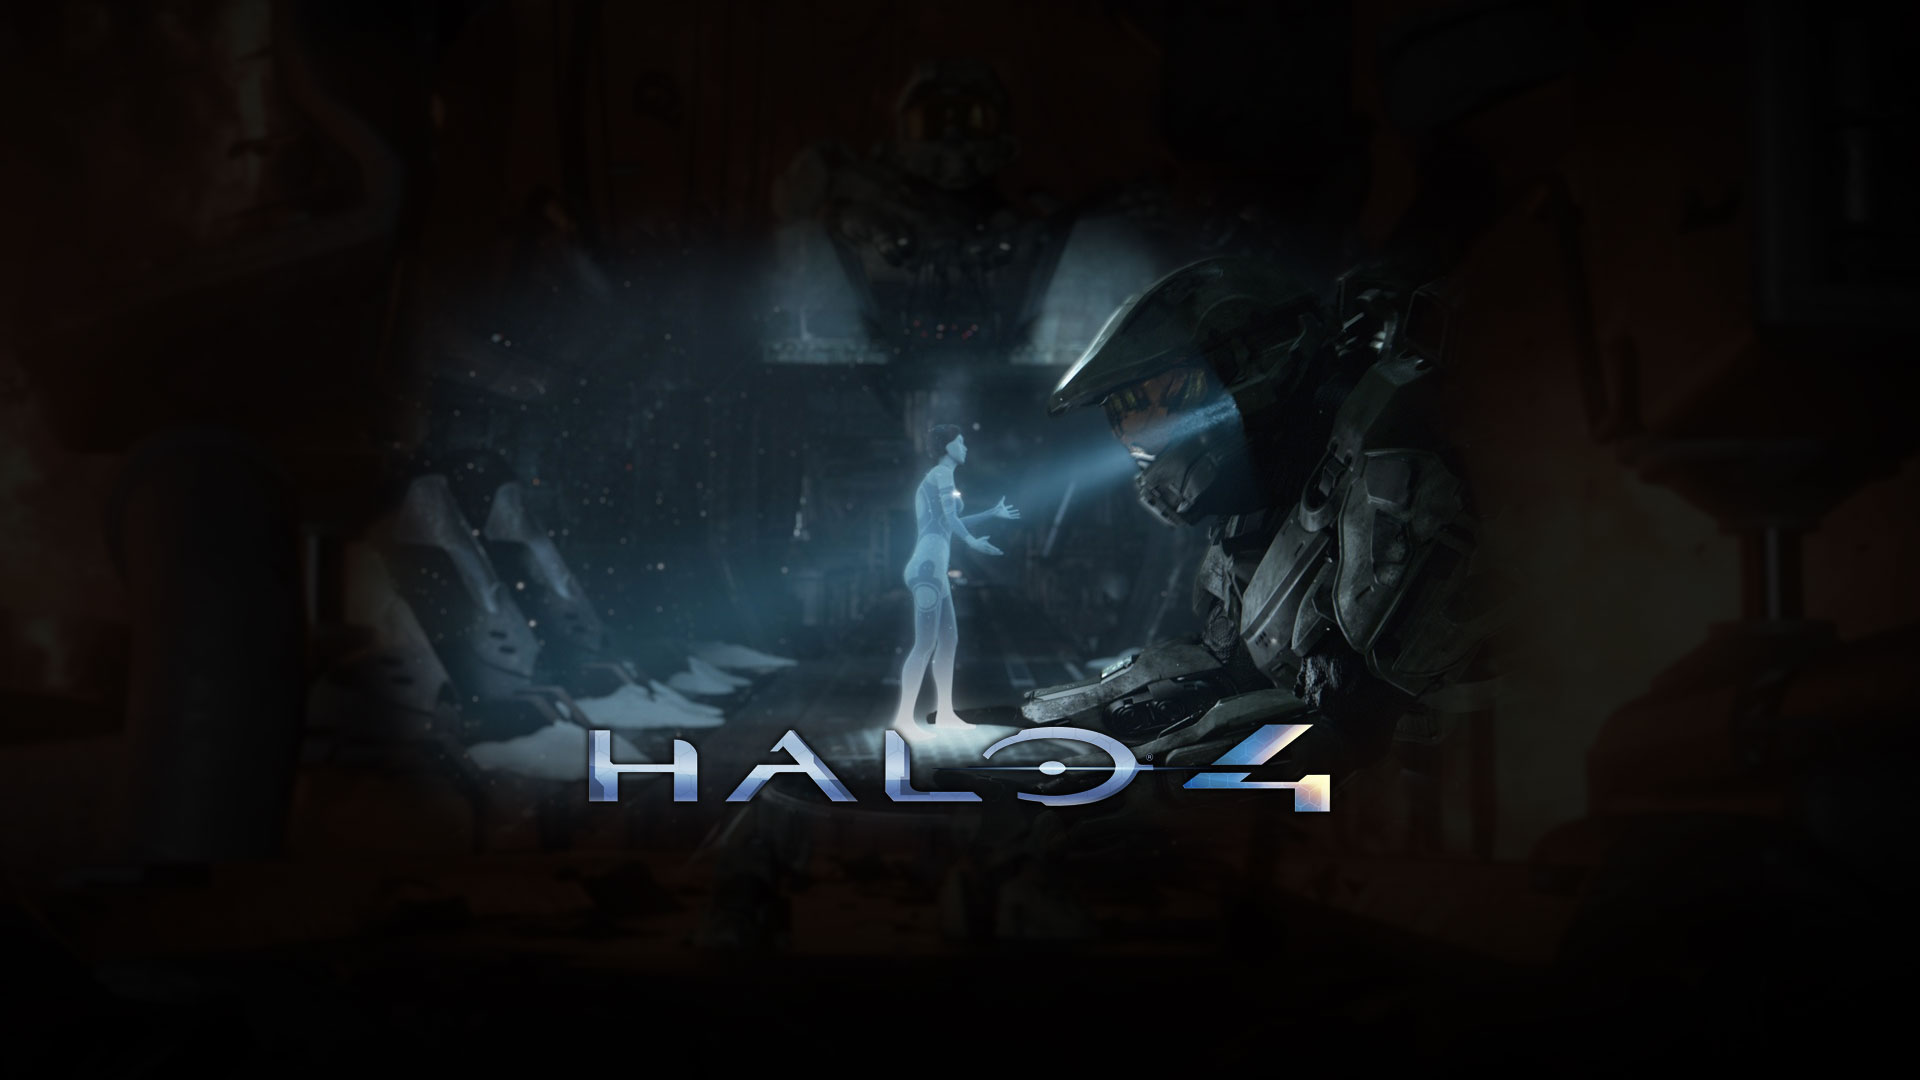 Halo 4 Wallpapers in HD Page 3 1920x1080